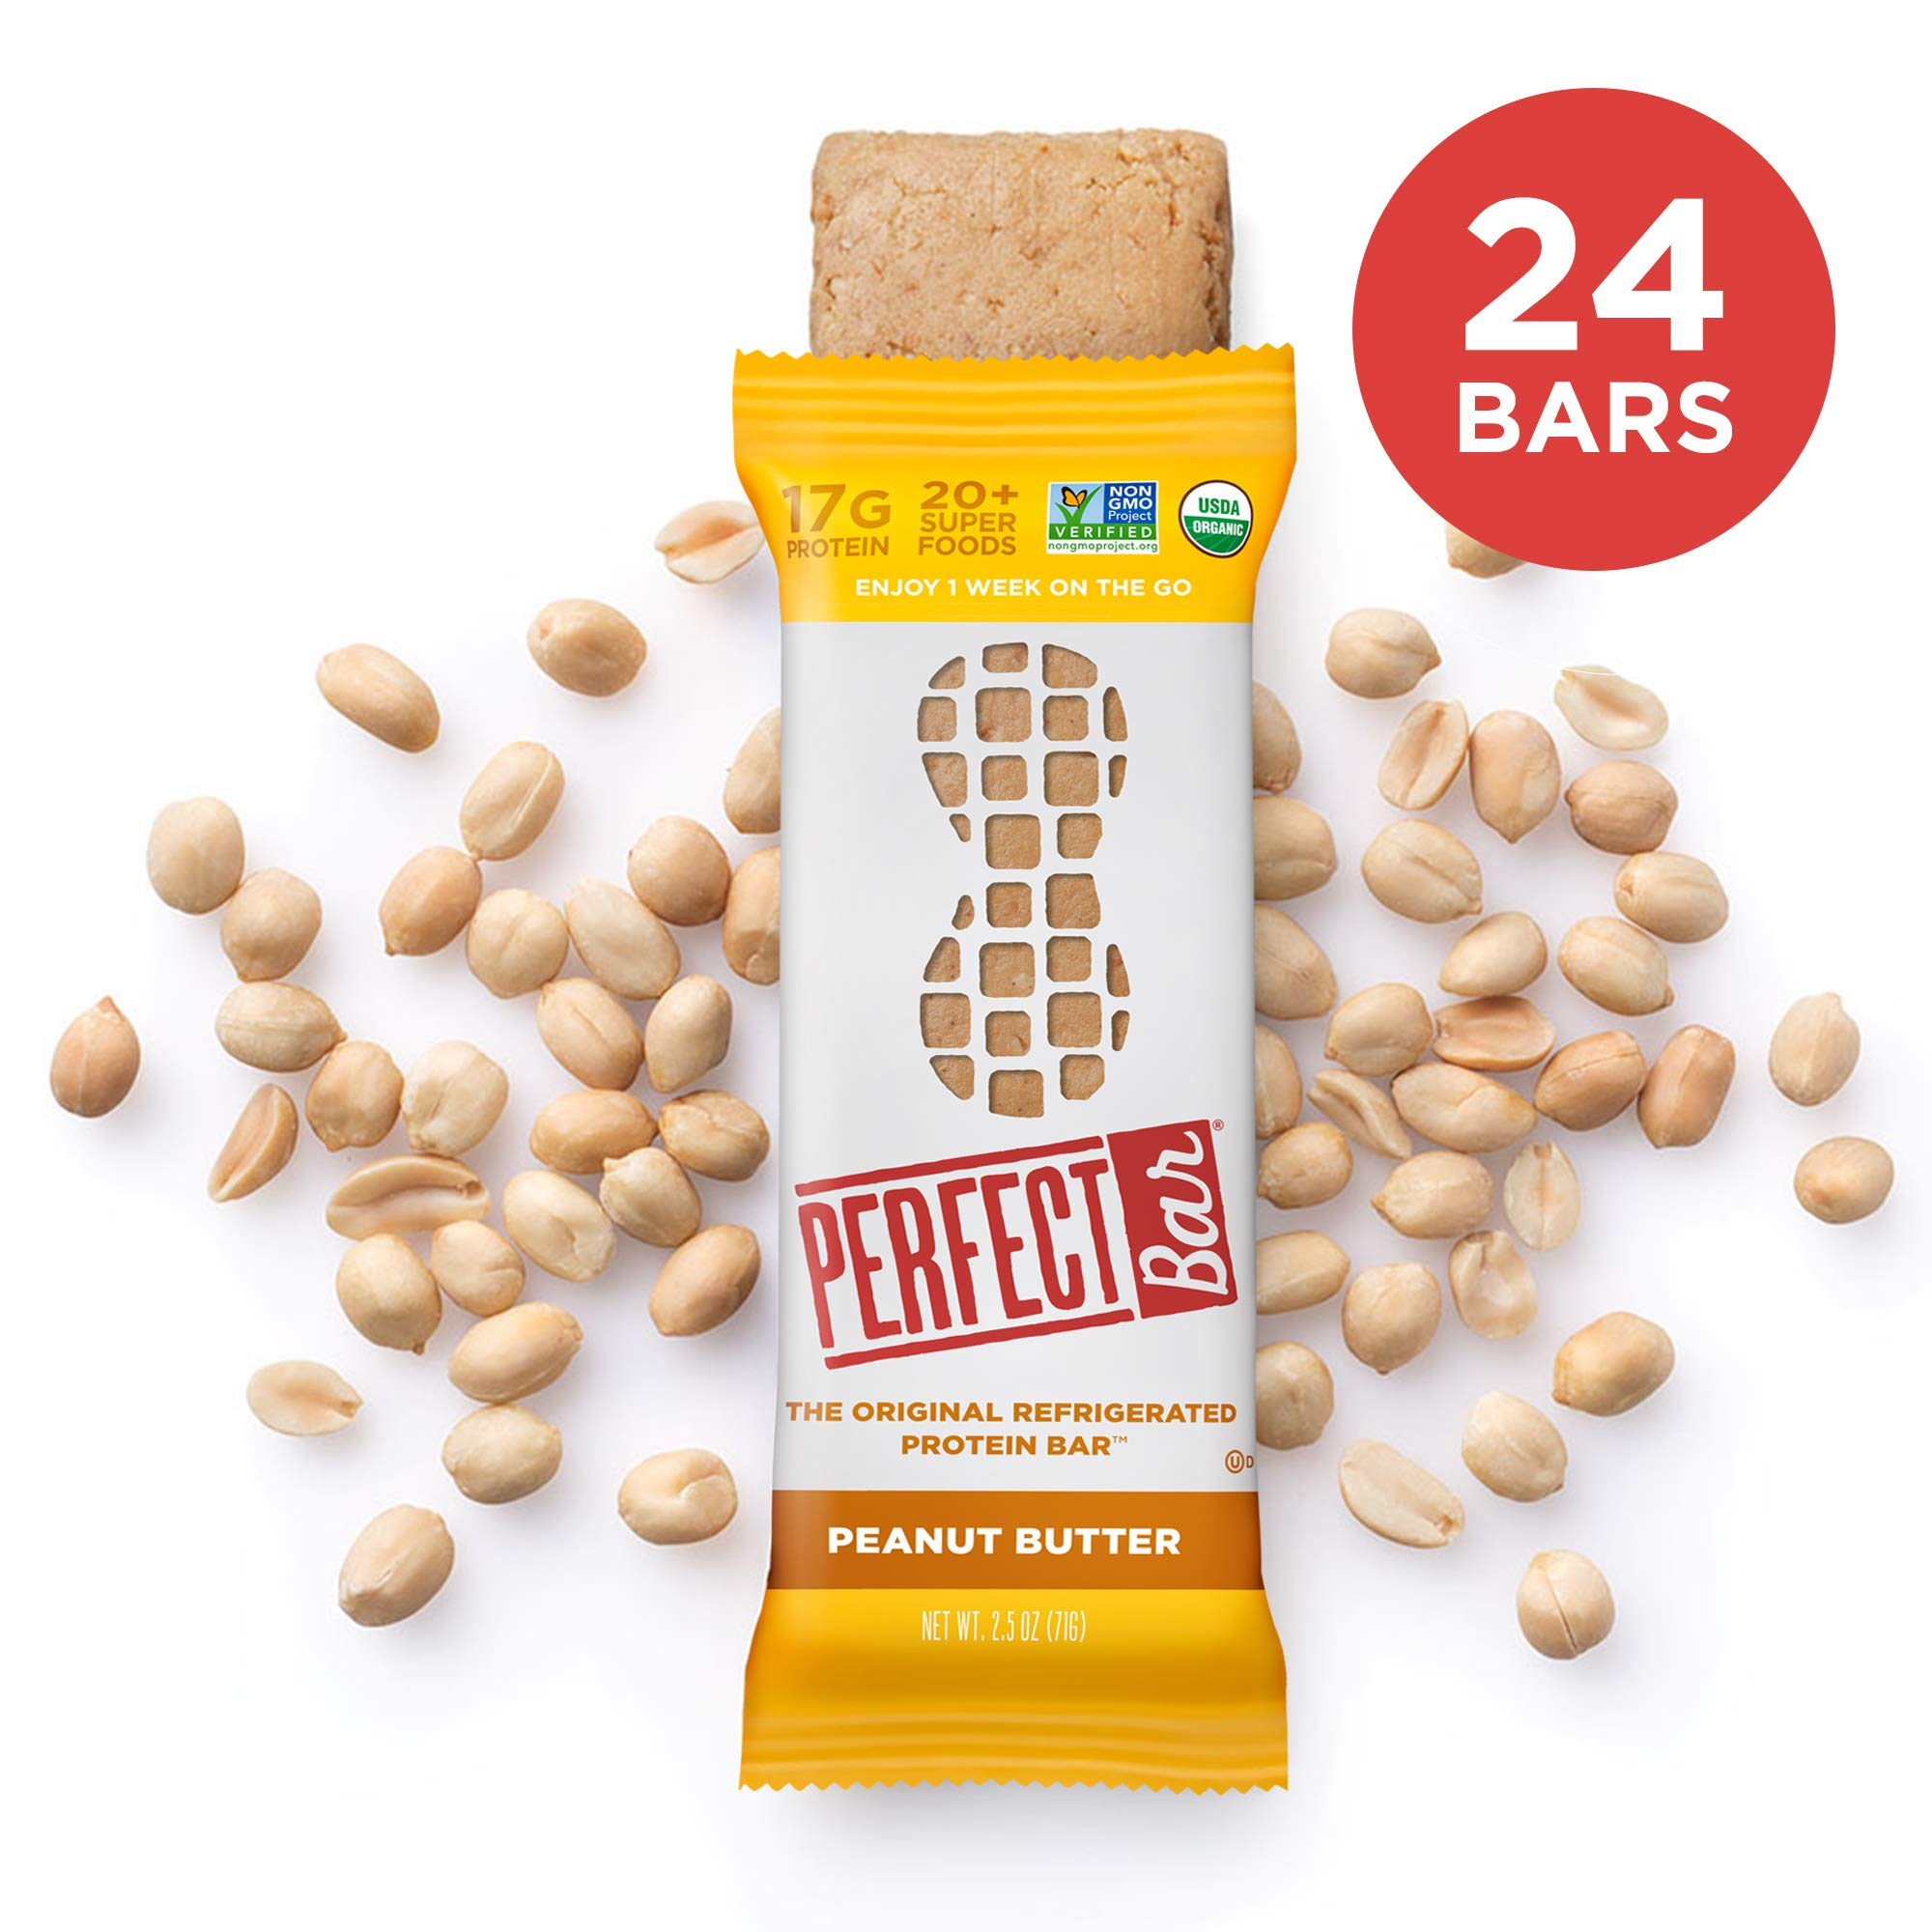 Perfect Bar Original Refrigerated Protein bar, Peanut Butter, 17g Whole Food Protein, Gluten Free, Organic & Non-Gmo, 2.5 Oz. bar, 8 Count (Pack of 3) by Perfect Bar